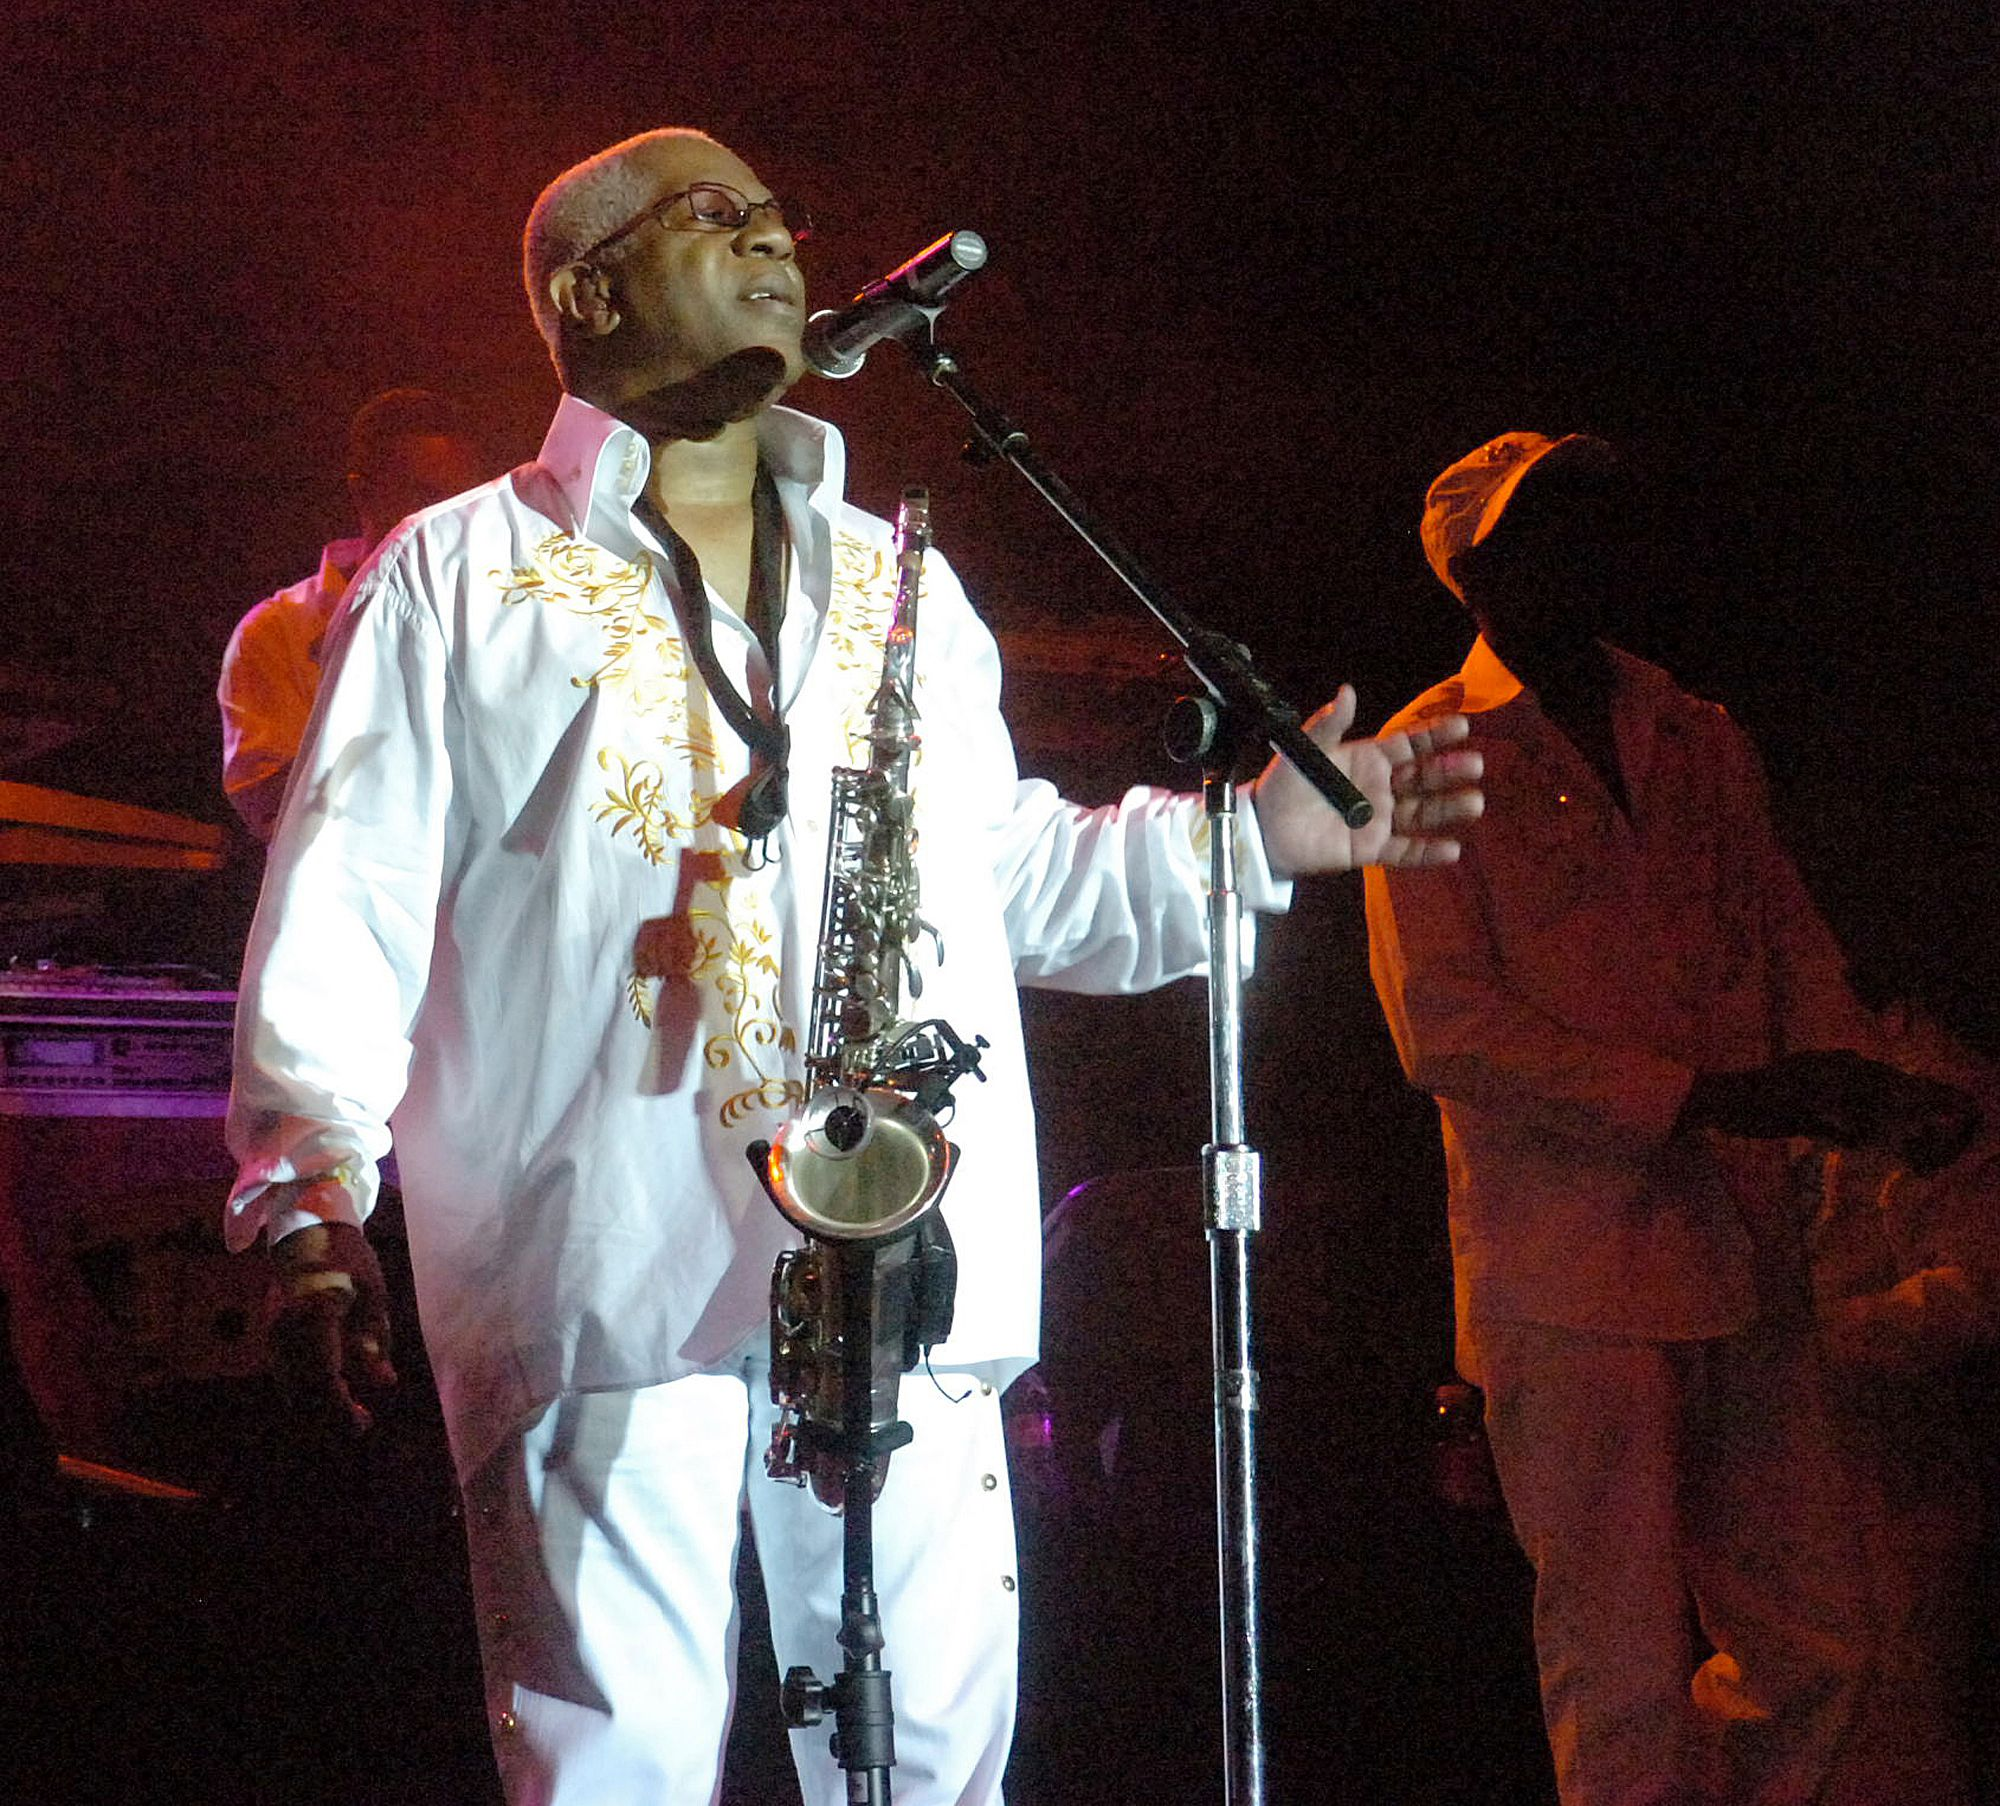 """In this Aug. 3, 2008 file photo, Dennis Thomas performs with the band """"Kool and the Gang"""" in concert in Bethlehem, Pa. (Joe G"""